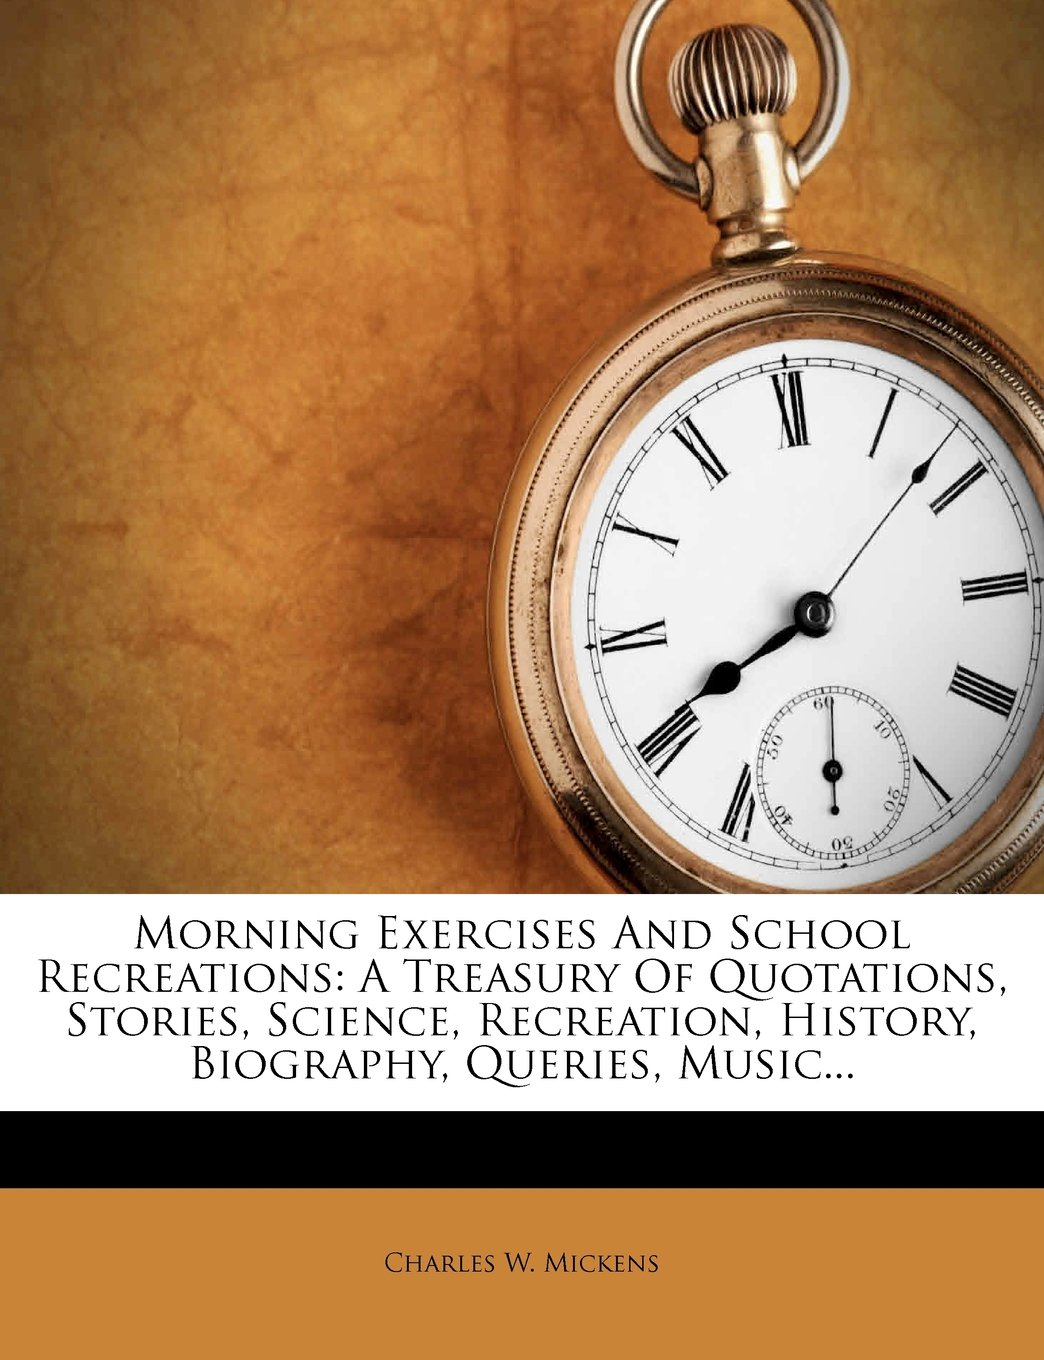 Morning Exercises And School Recreations: A Treasury Of Quotations, Stories, Science, Recreation, History, Biography, Queries, Music... PDF